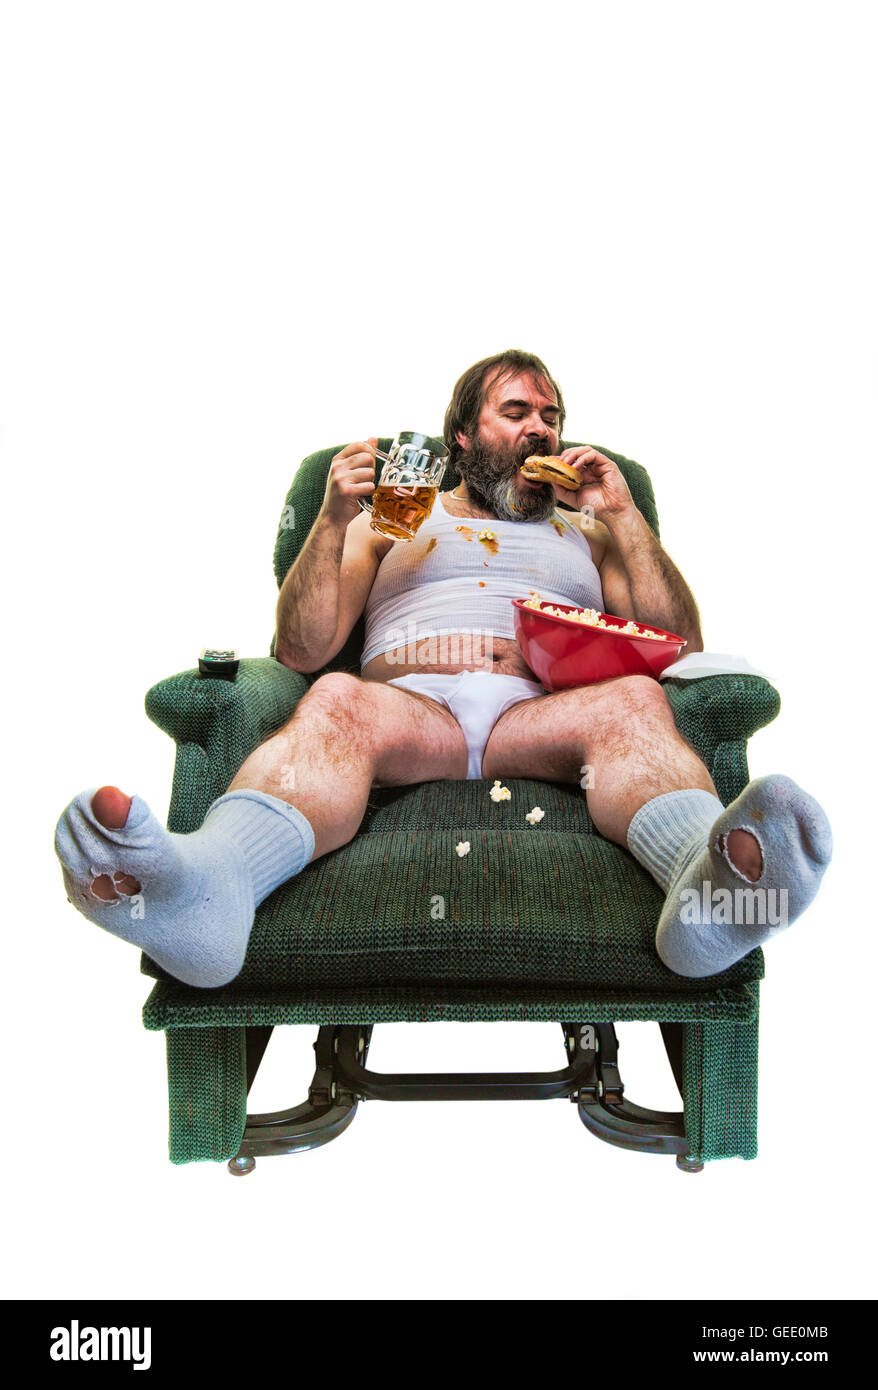 Unhealthy overweight man eating junk food on a white background. - Stock Image